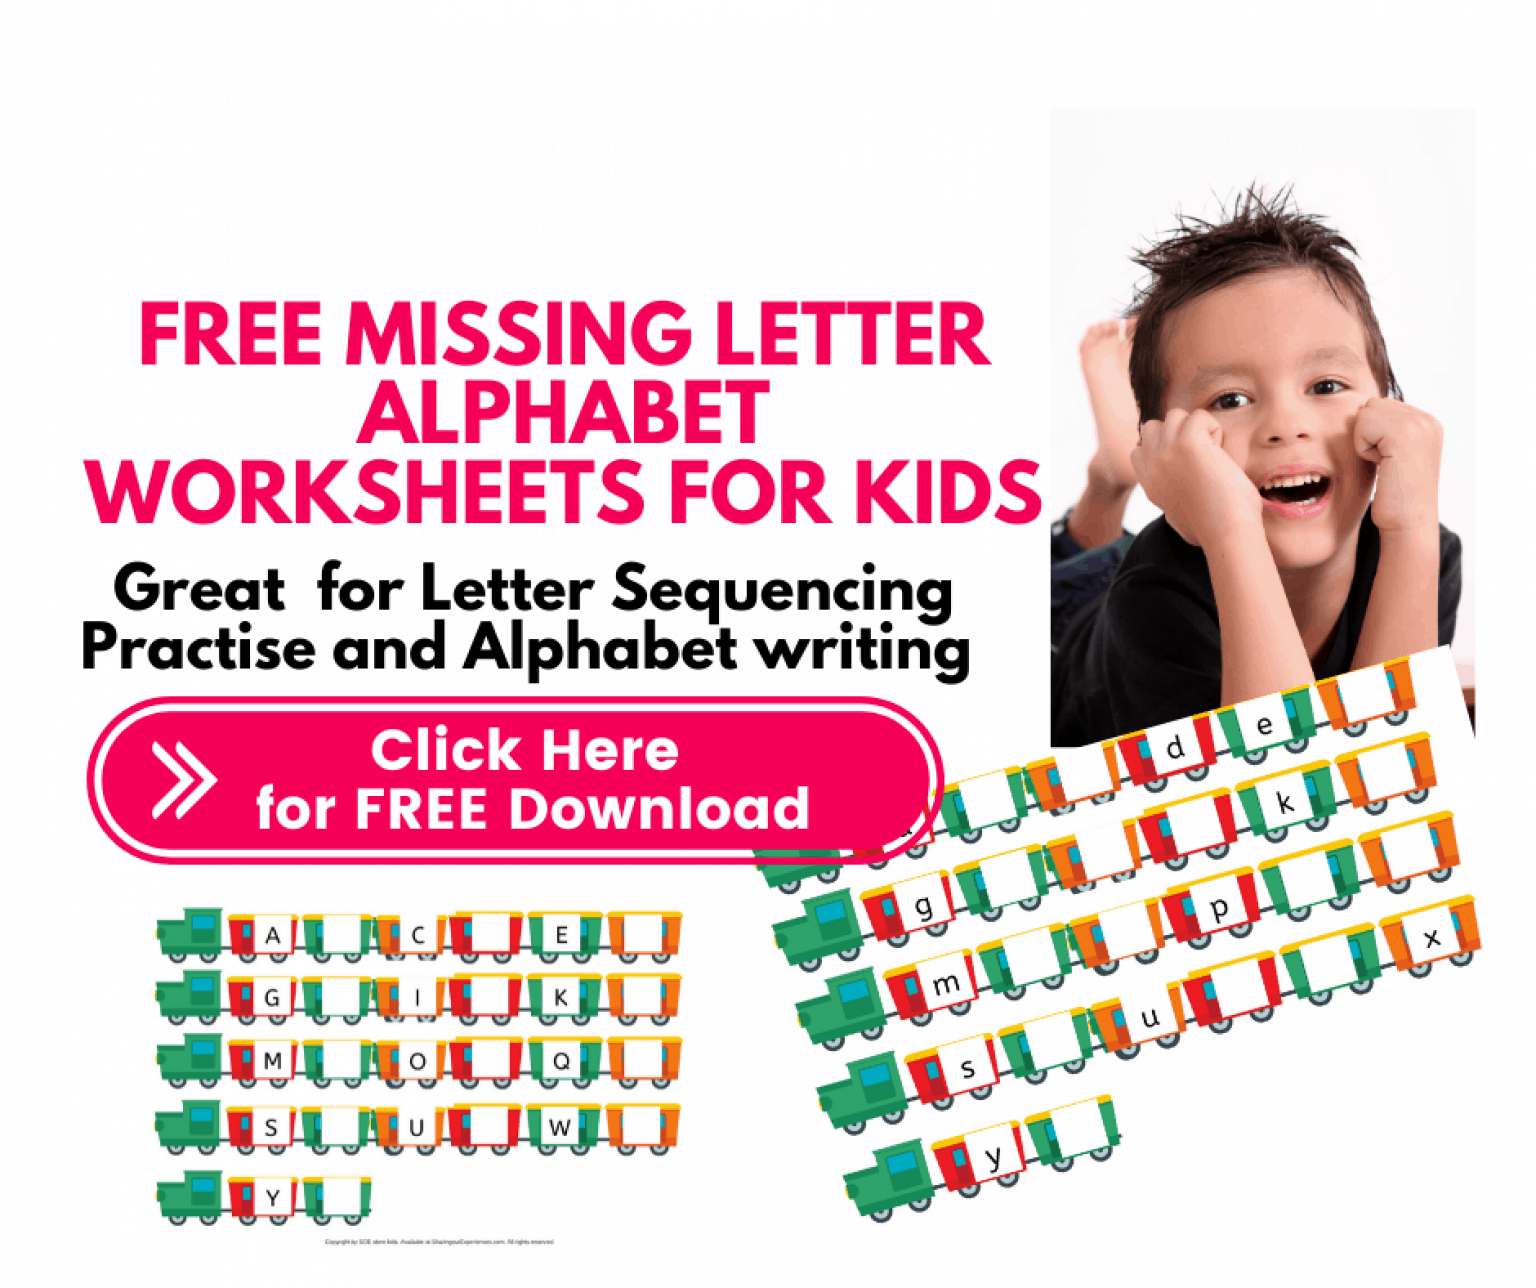 Free Missing Letter Worksheets For Kids